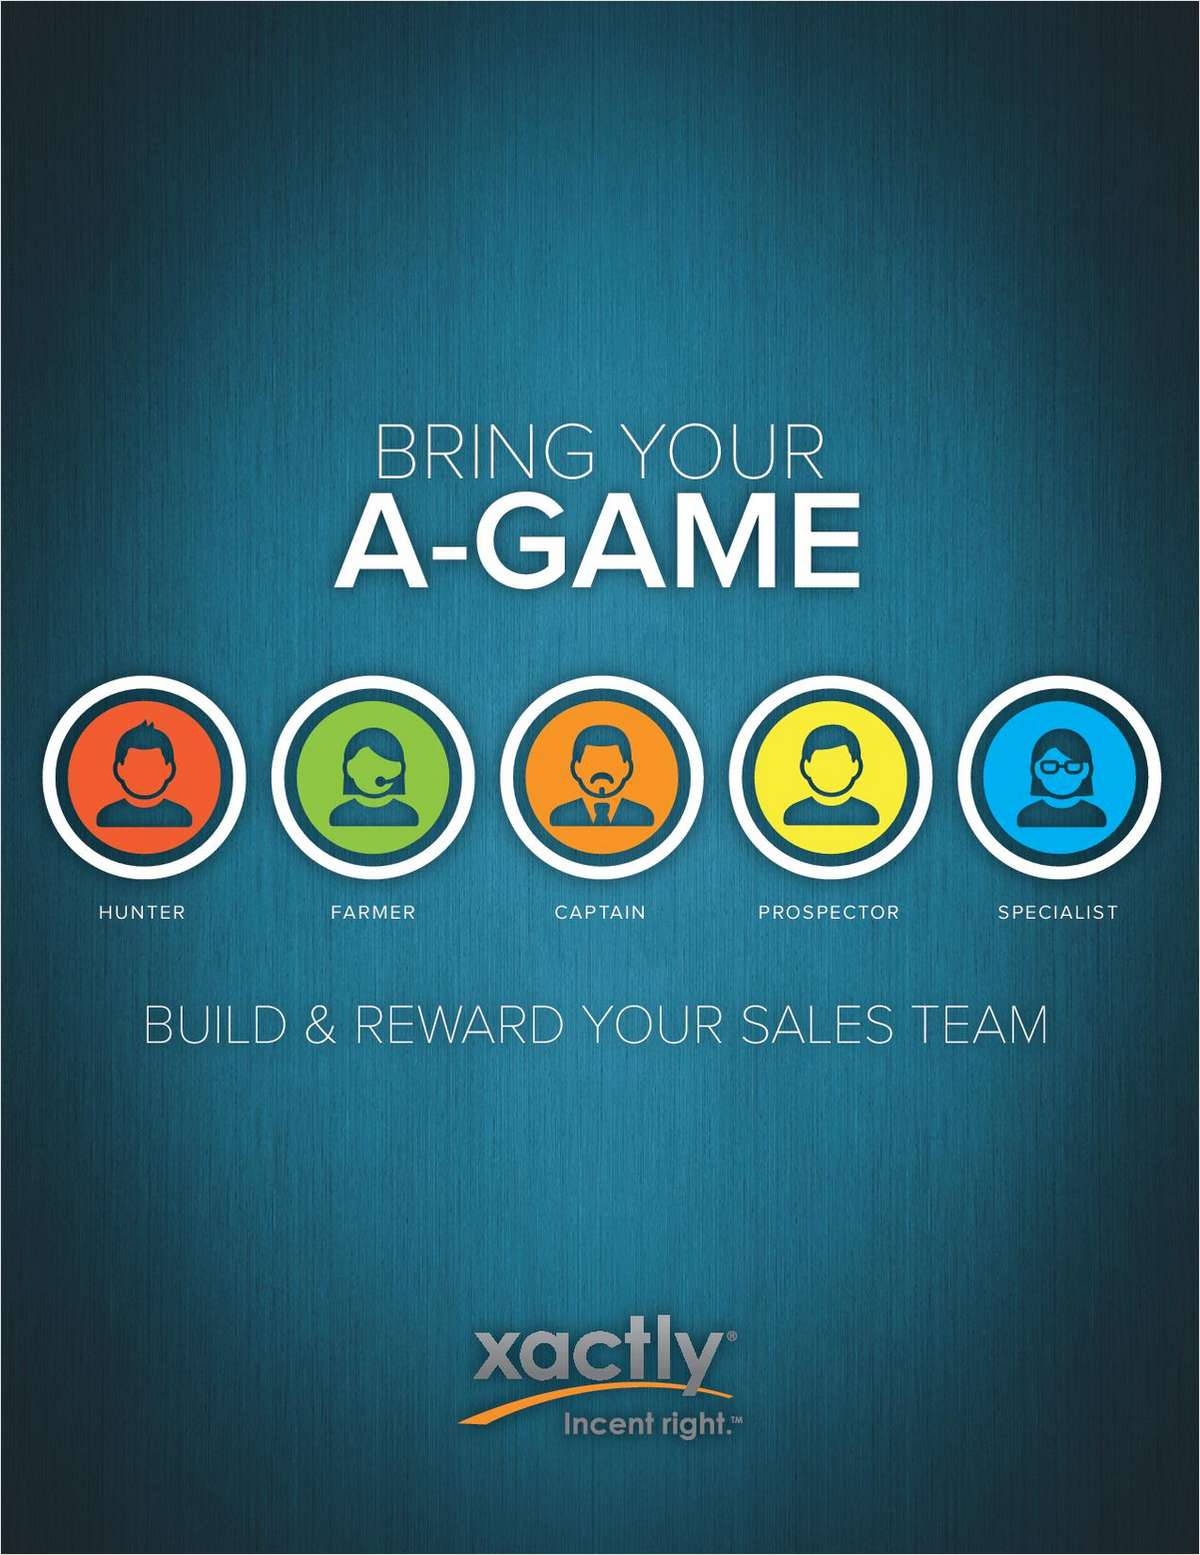 Bring Your A-Game: Build and Reward Your Sales Team